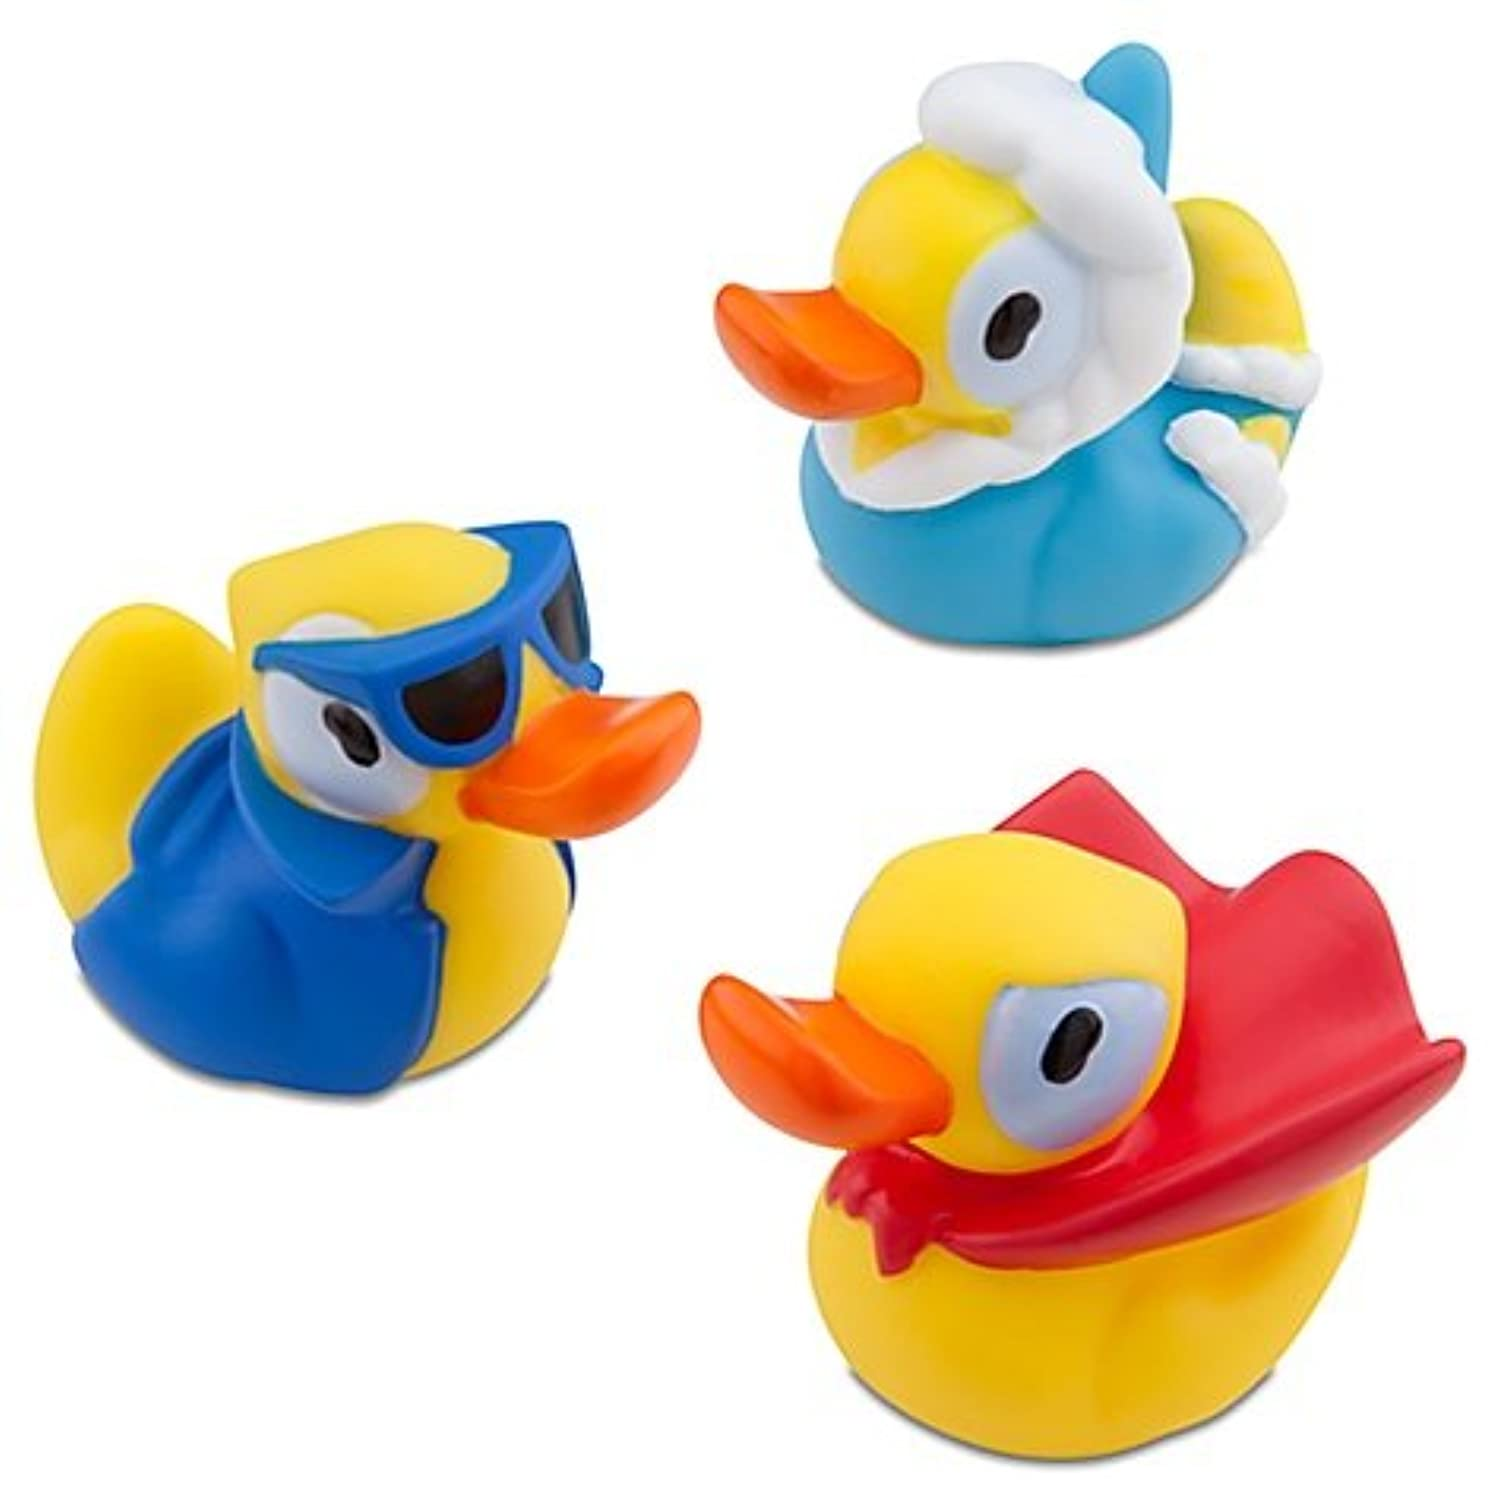 【Disney】 Where's My WATER? Rubber Duck Collection スワンピーのお風呂パニック! ラバーダック3匹セット